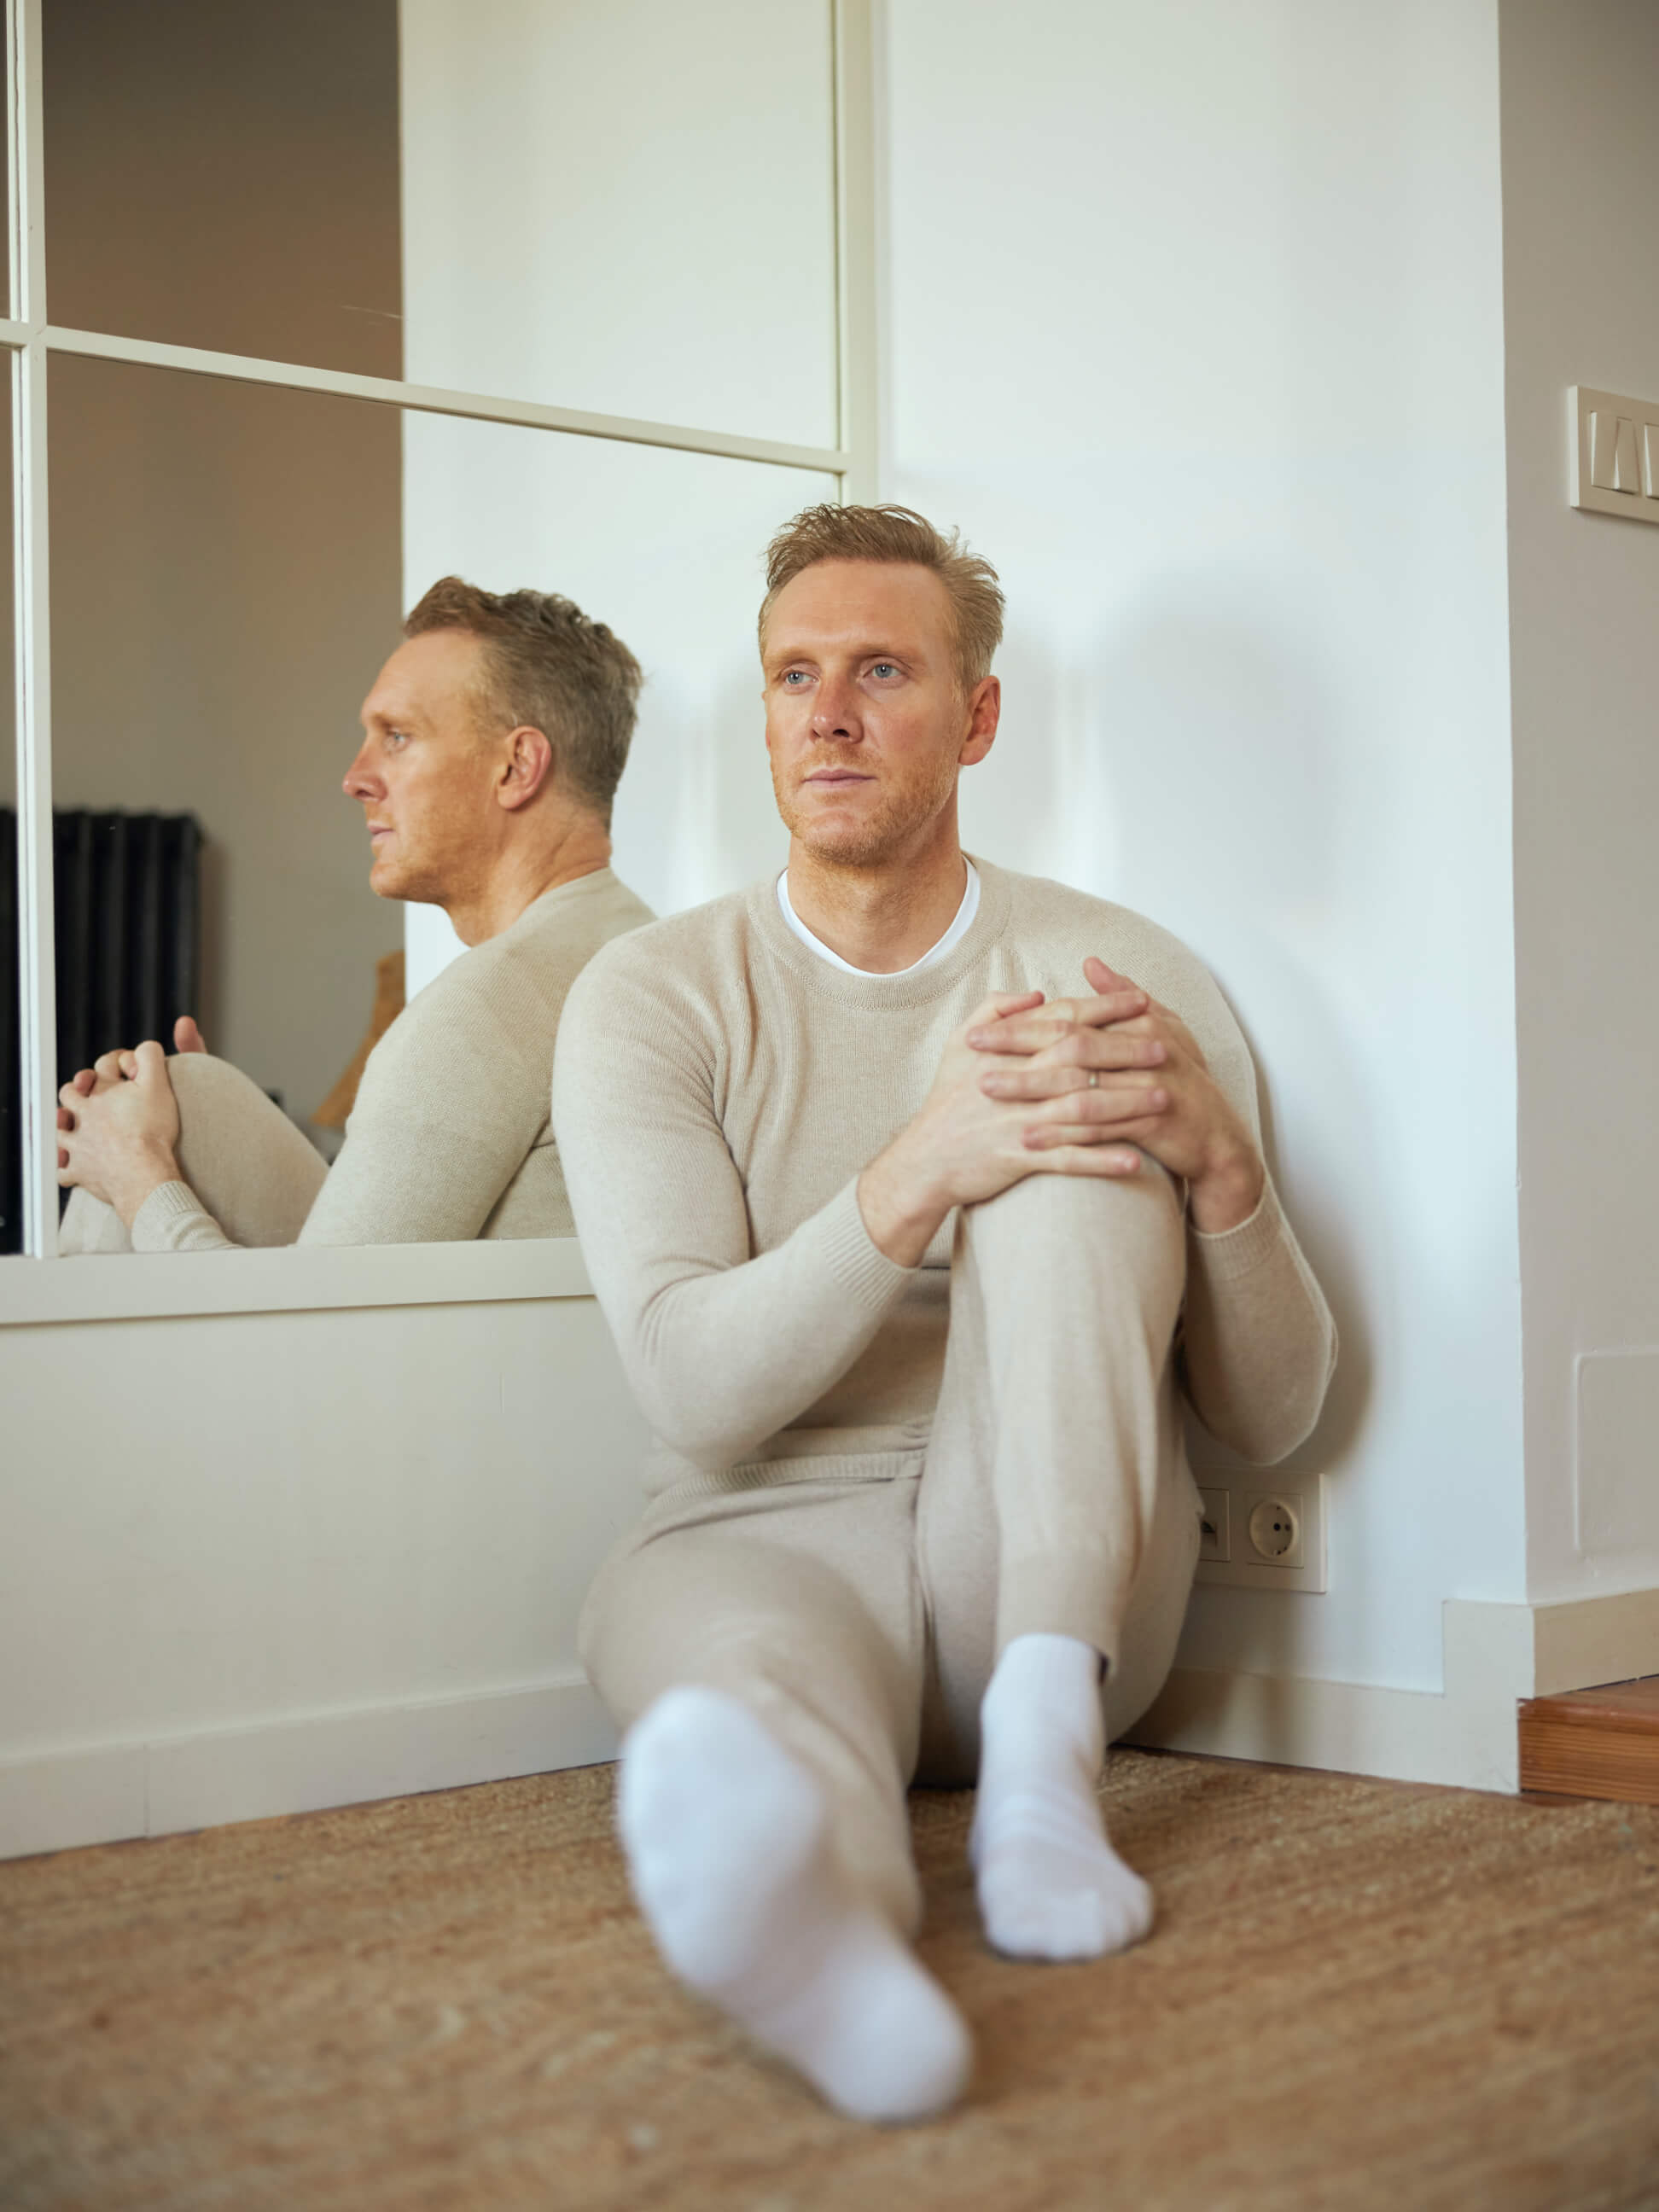 Joe wears our Thomas Seamless Cashmere Joggers and Thomas Integral Shoulder Cashmere Sweatshirt in Natural